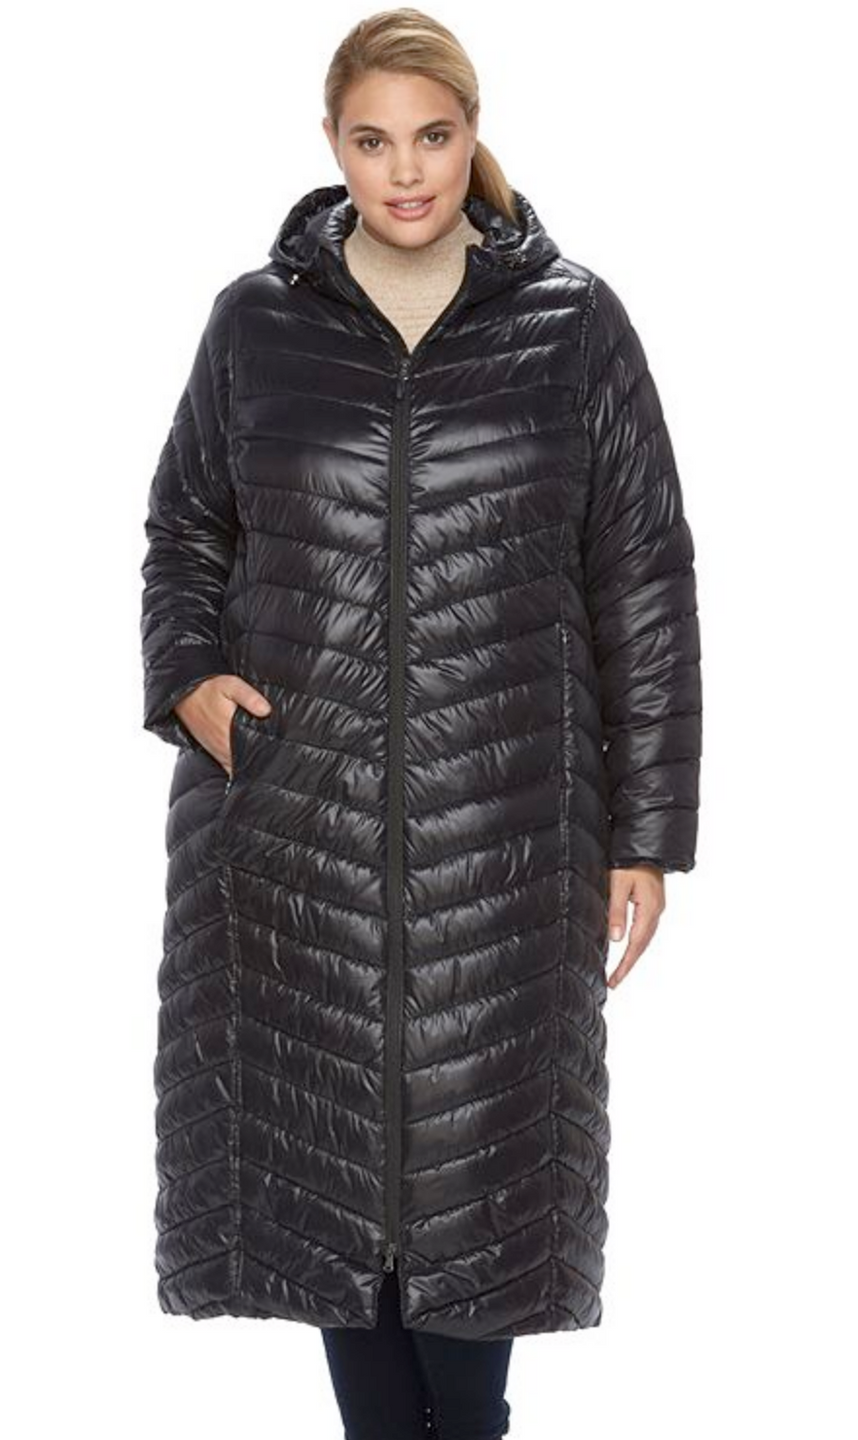 Winter is coming... 7 gorgeous plus size Puffer Coats